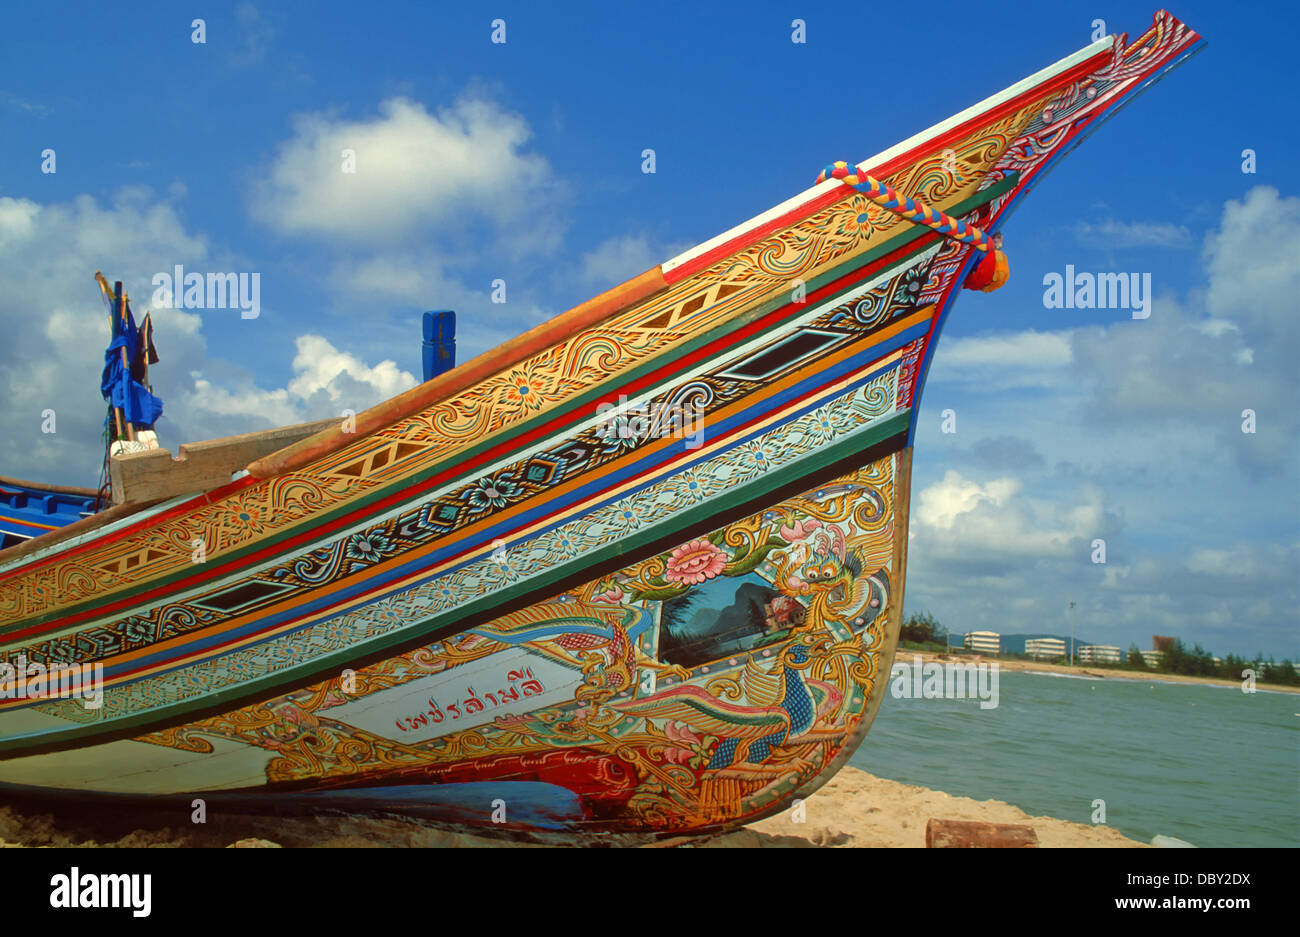 Colourful traditional hand-painted fishing boat common to the area of Songkhla in Southern Thailand. Stock Photo